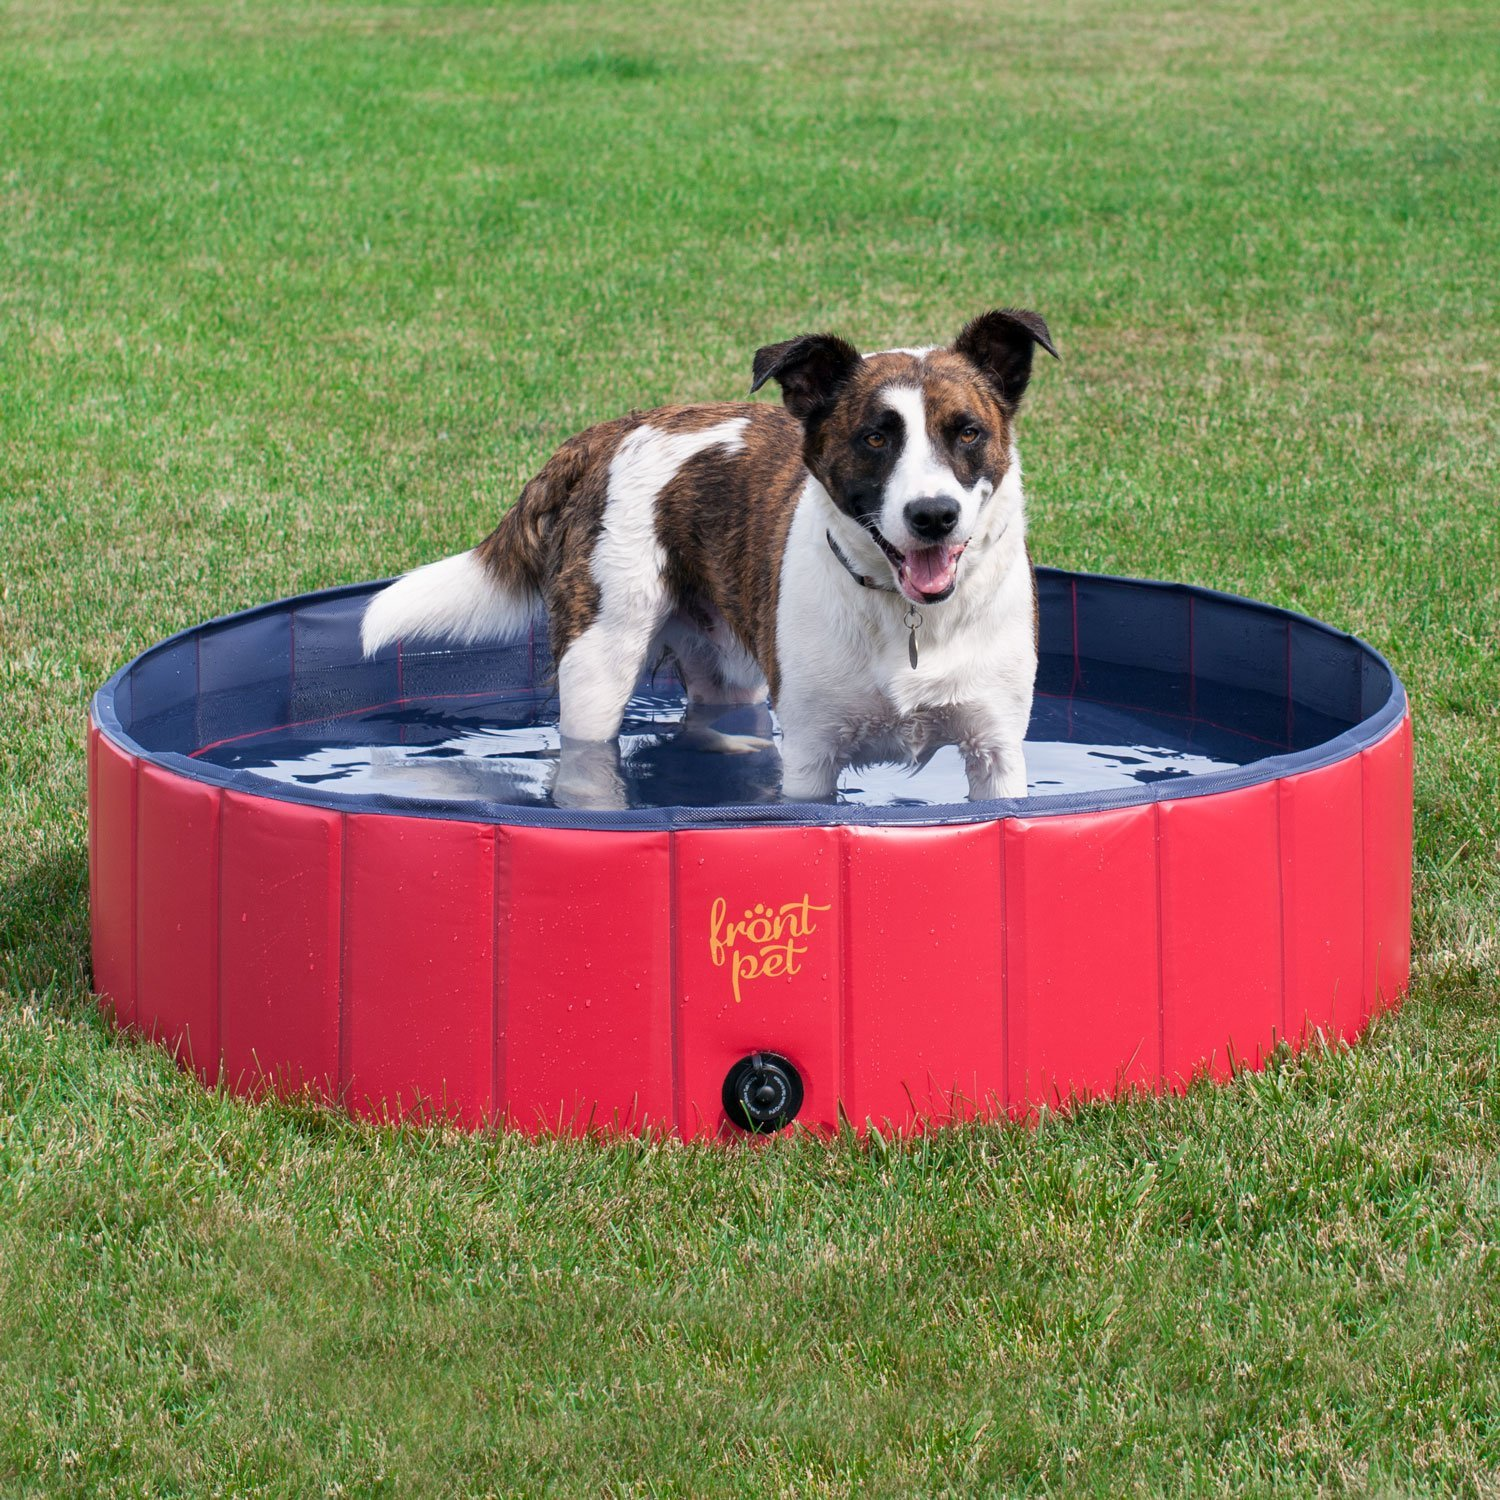 Pools For Dogs Reviews The Pool Cleaner Expert